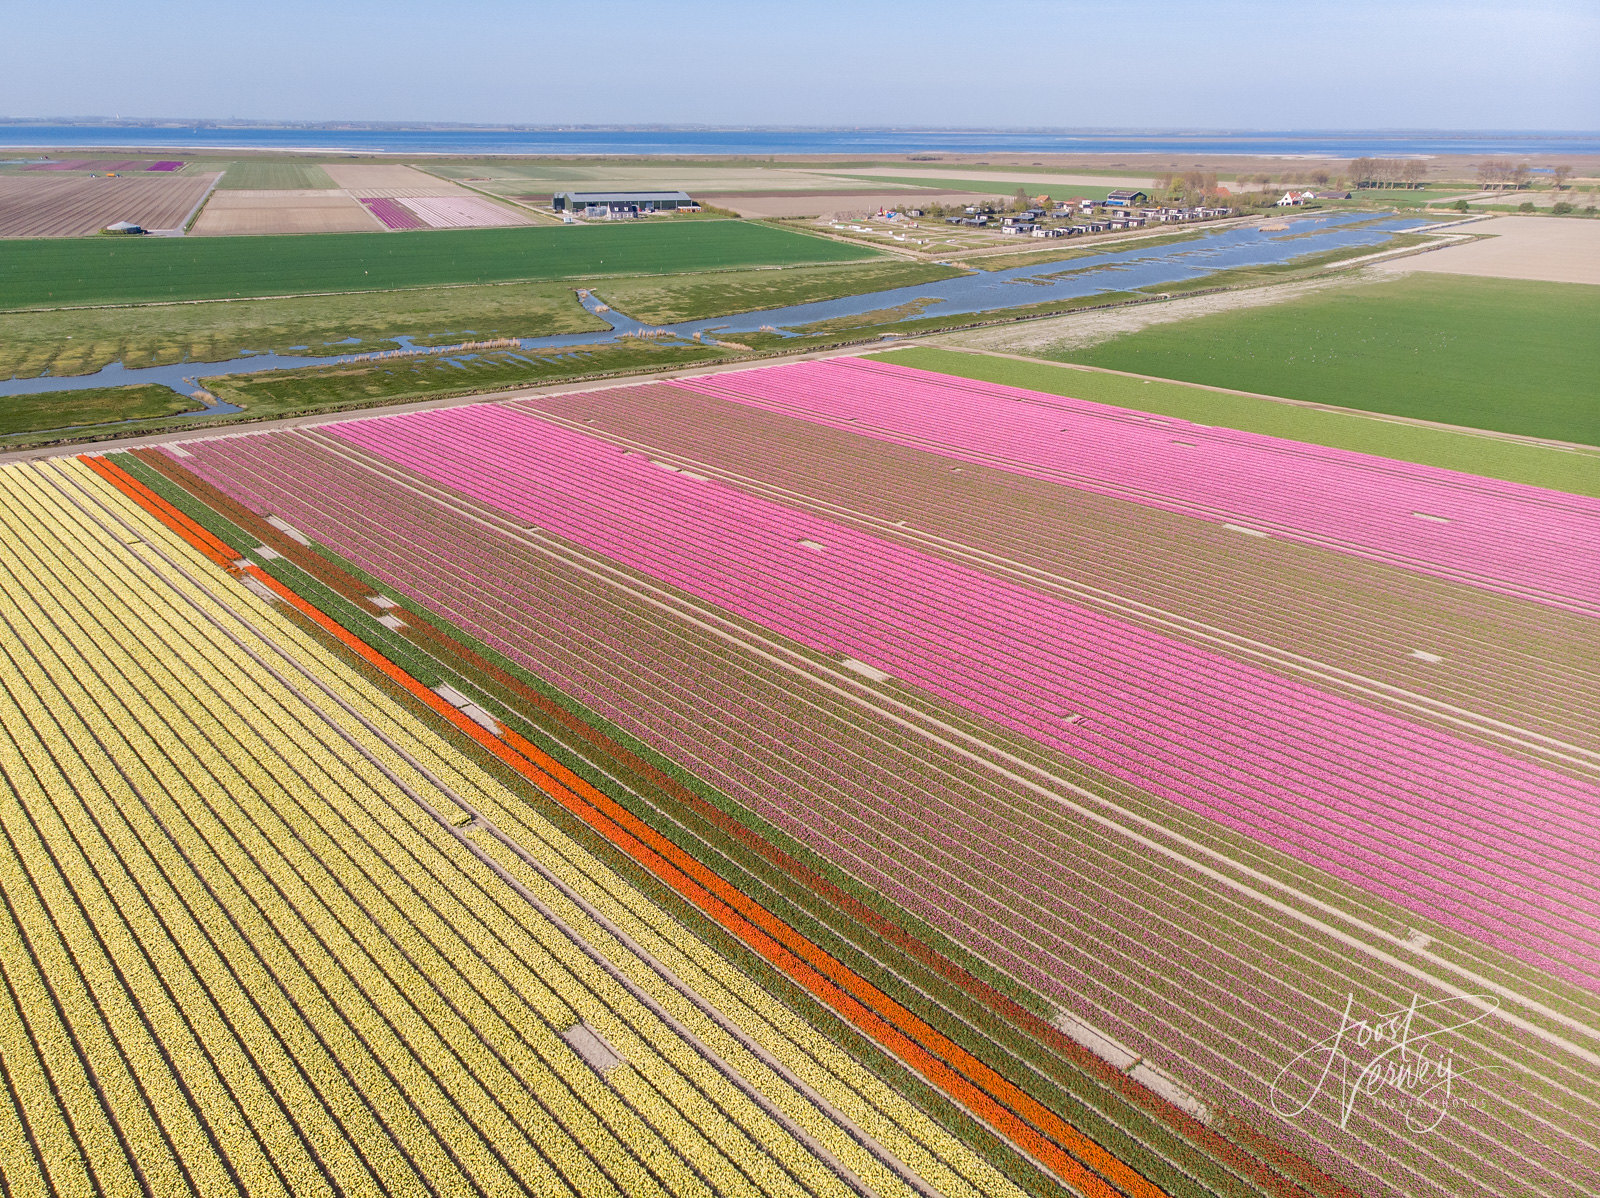 Lovely landscape with tulipfields